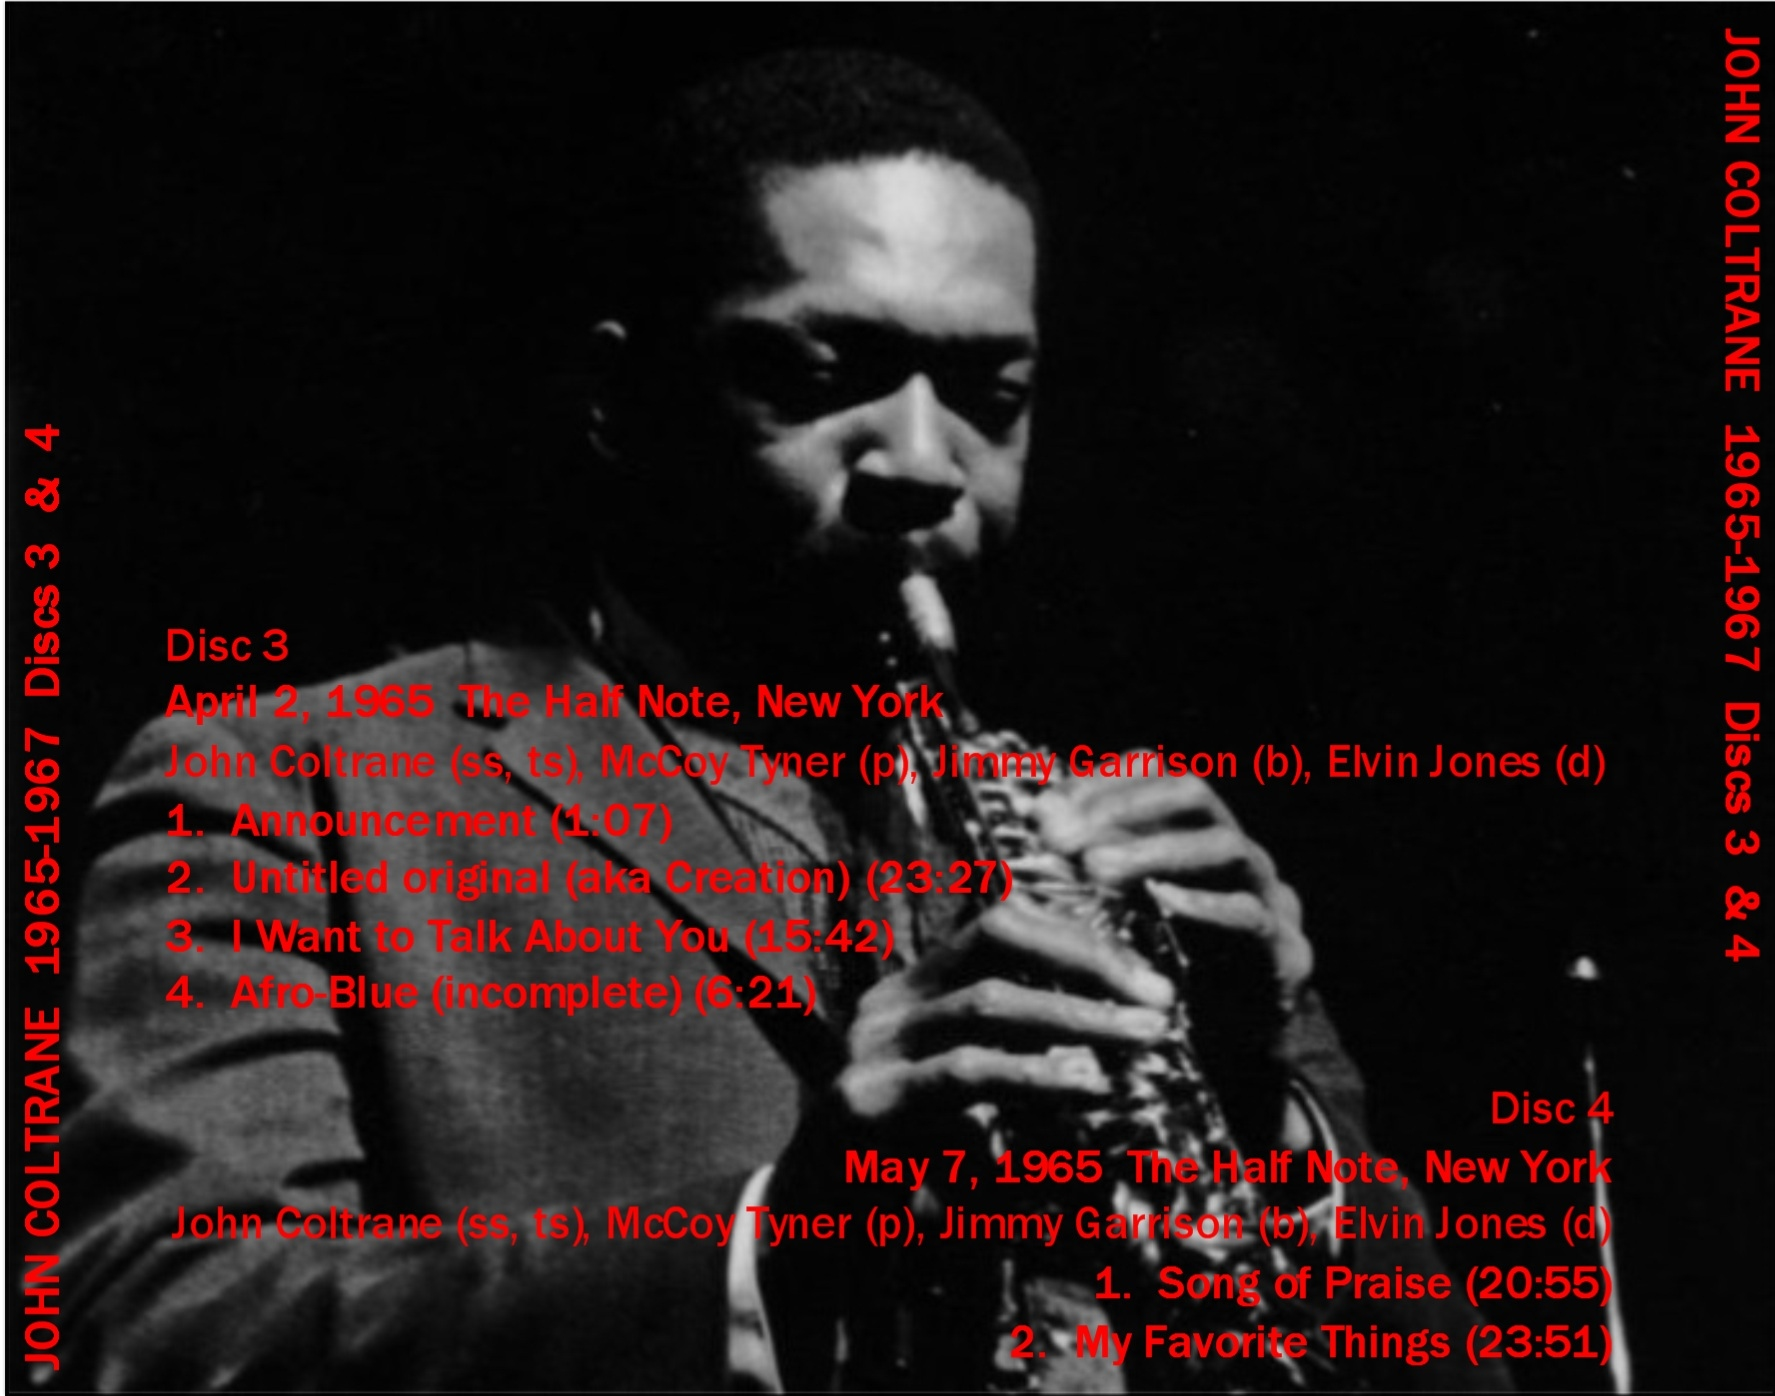 JohnColtrane1965-1967LateTraneCollection_pt1 (3).jpg